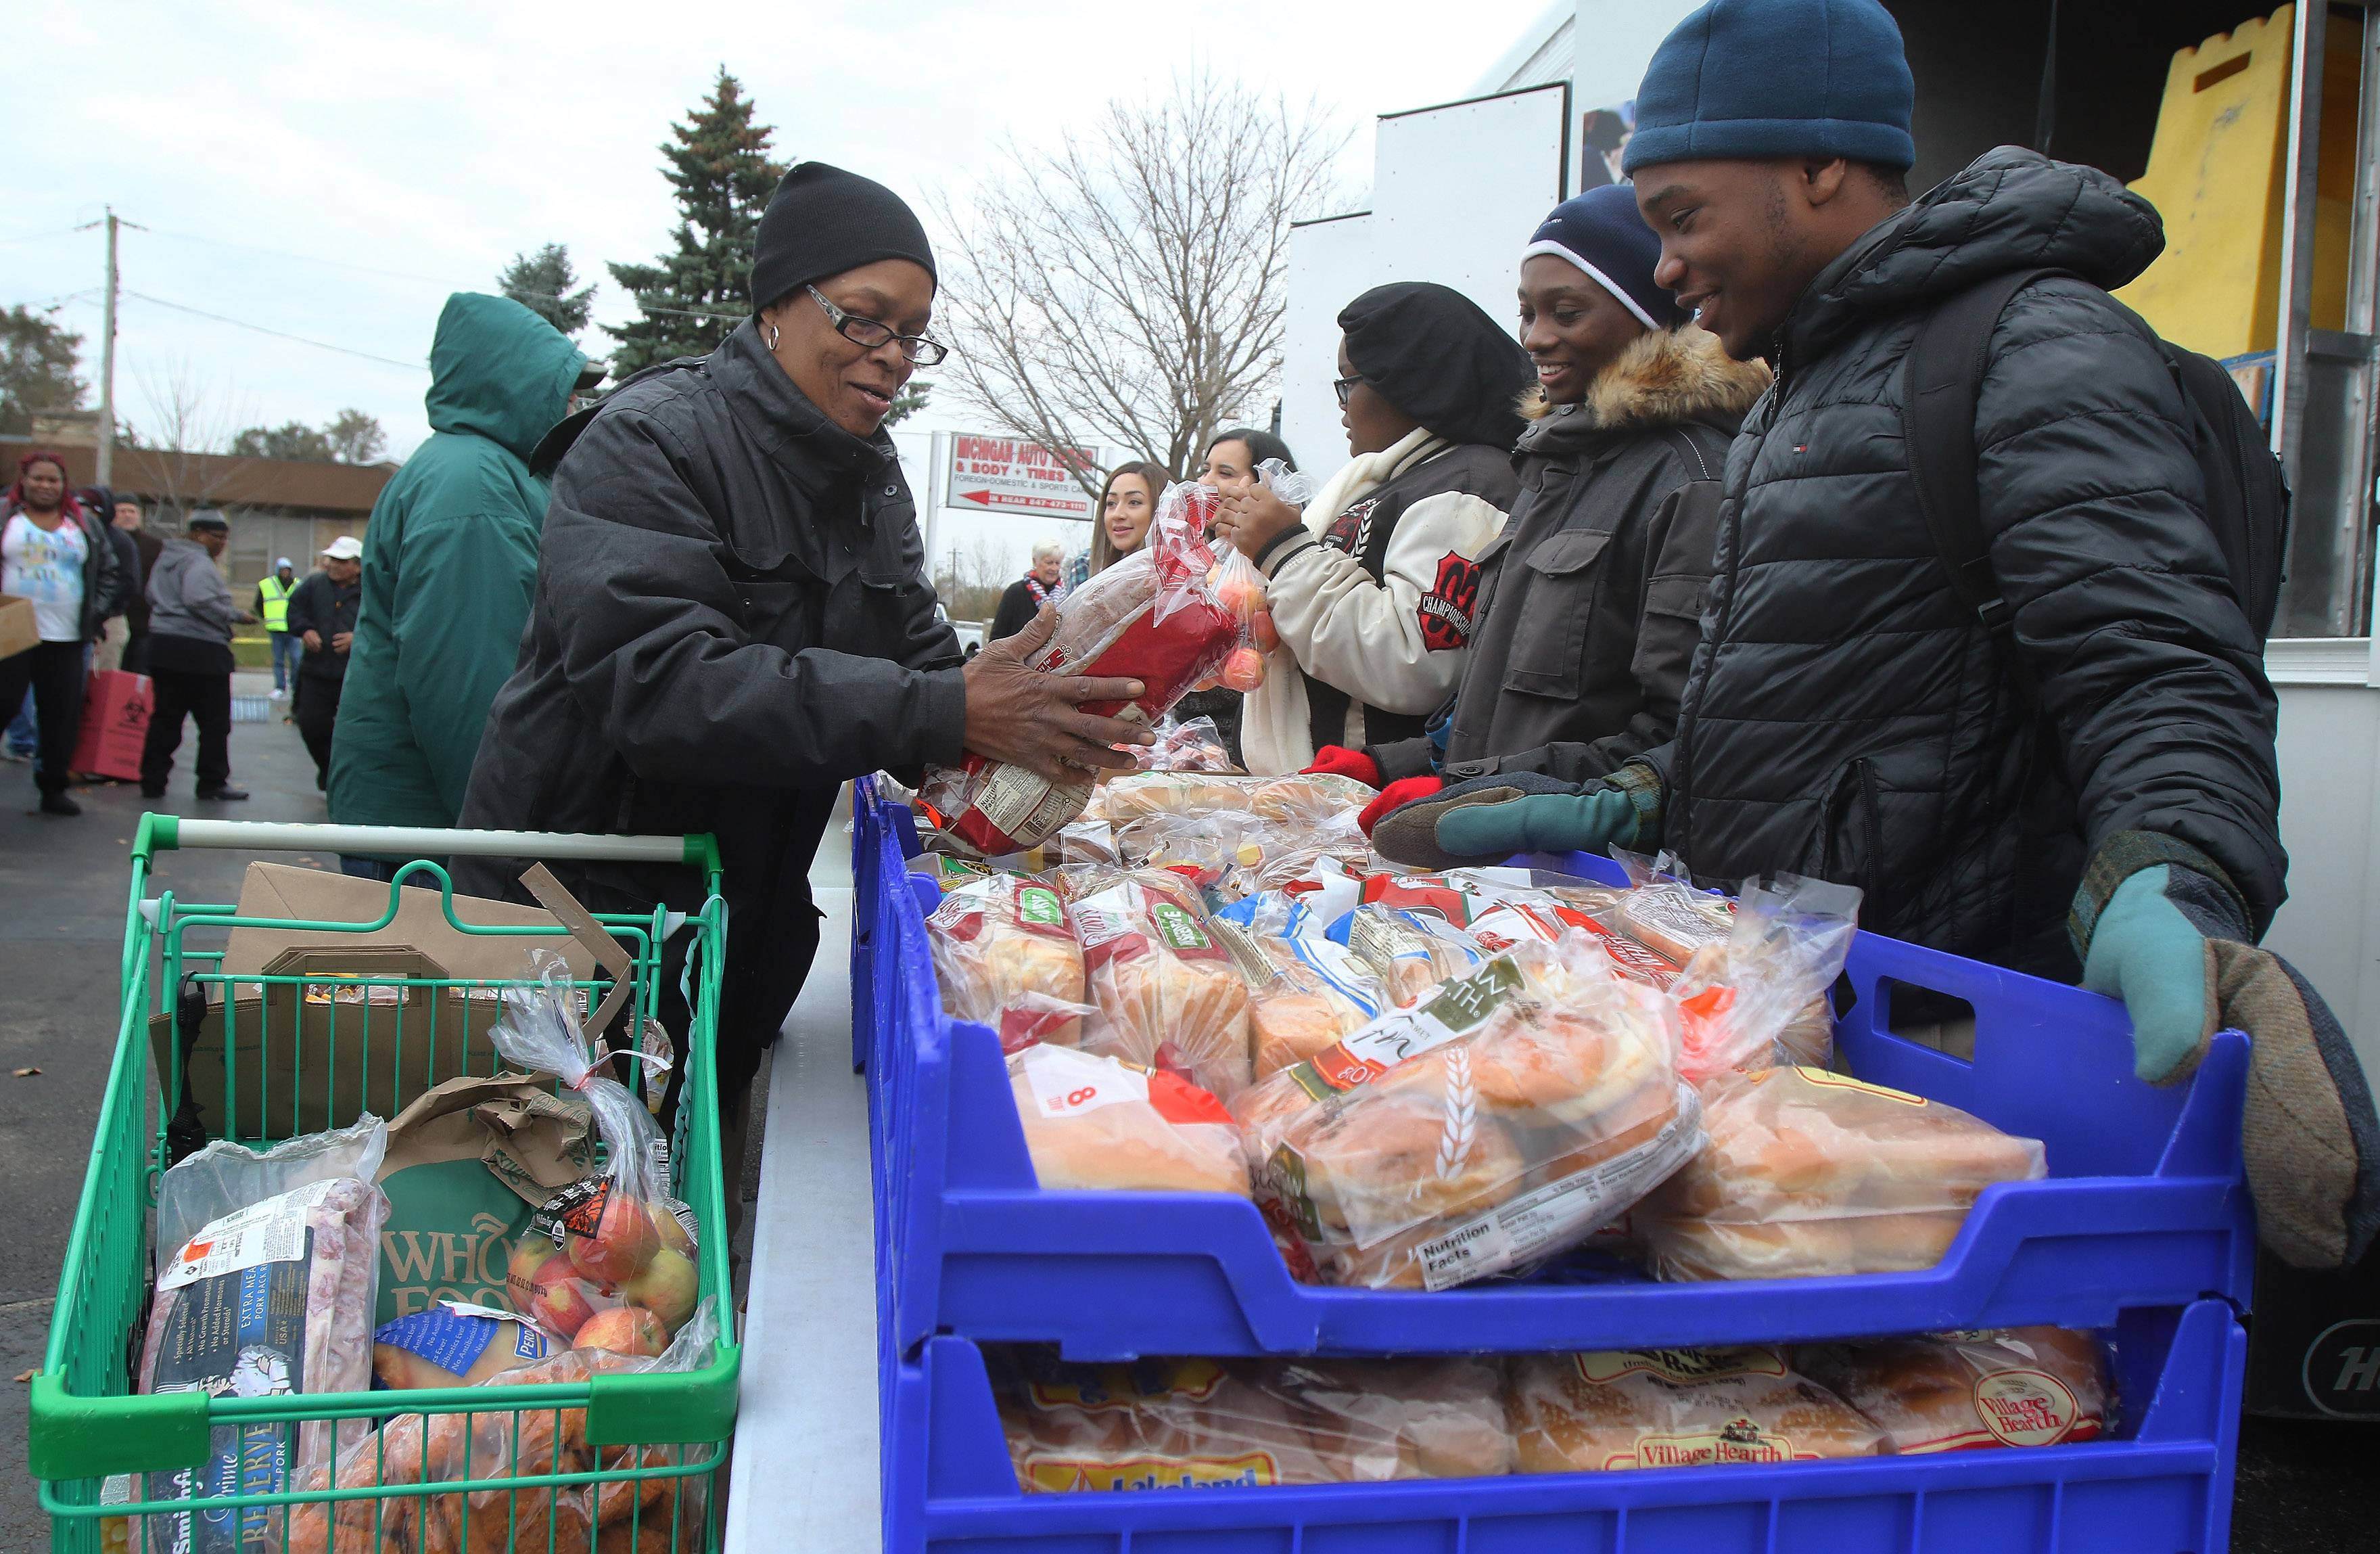 Former Army Sgt. Lolita Shelton of North Chicago picks up bread from volunteers Jacquolin Nutall and Tailor Woods, both of Waukegan, as they hand out food Tuesday at Midwest Veterans Closet in North Chicago. The organization and the Northern Illinois Food Bank provided food and coats and clothing to military veterans and their families.